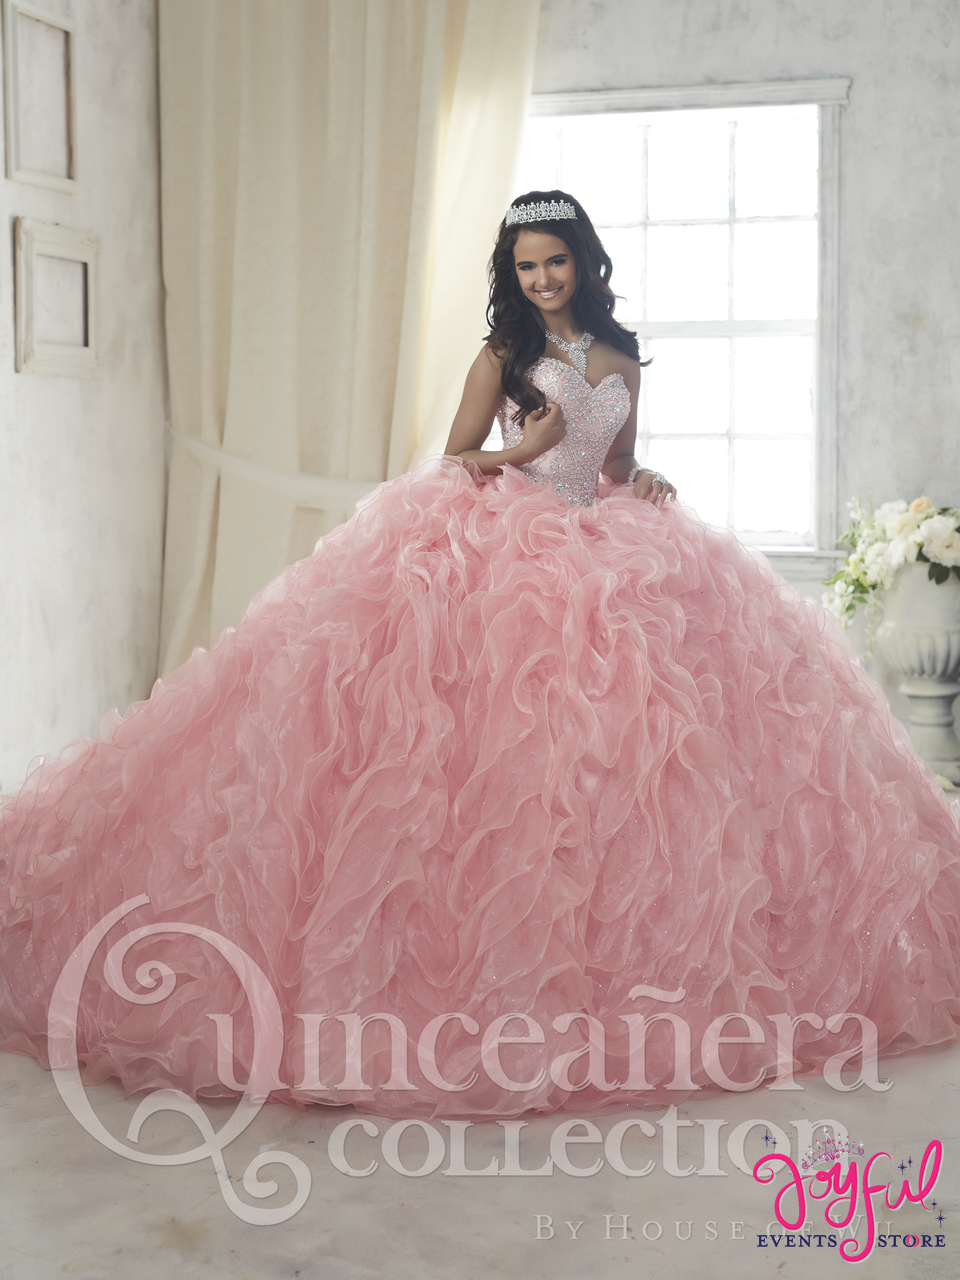 d1ca755d21e Quinceanera Dress  26848 - Joyful Events Store